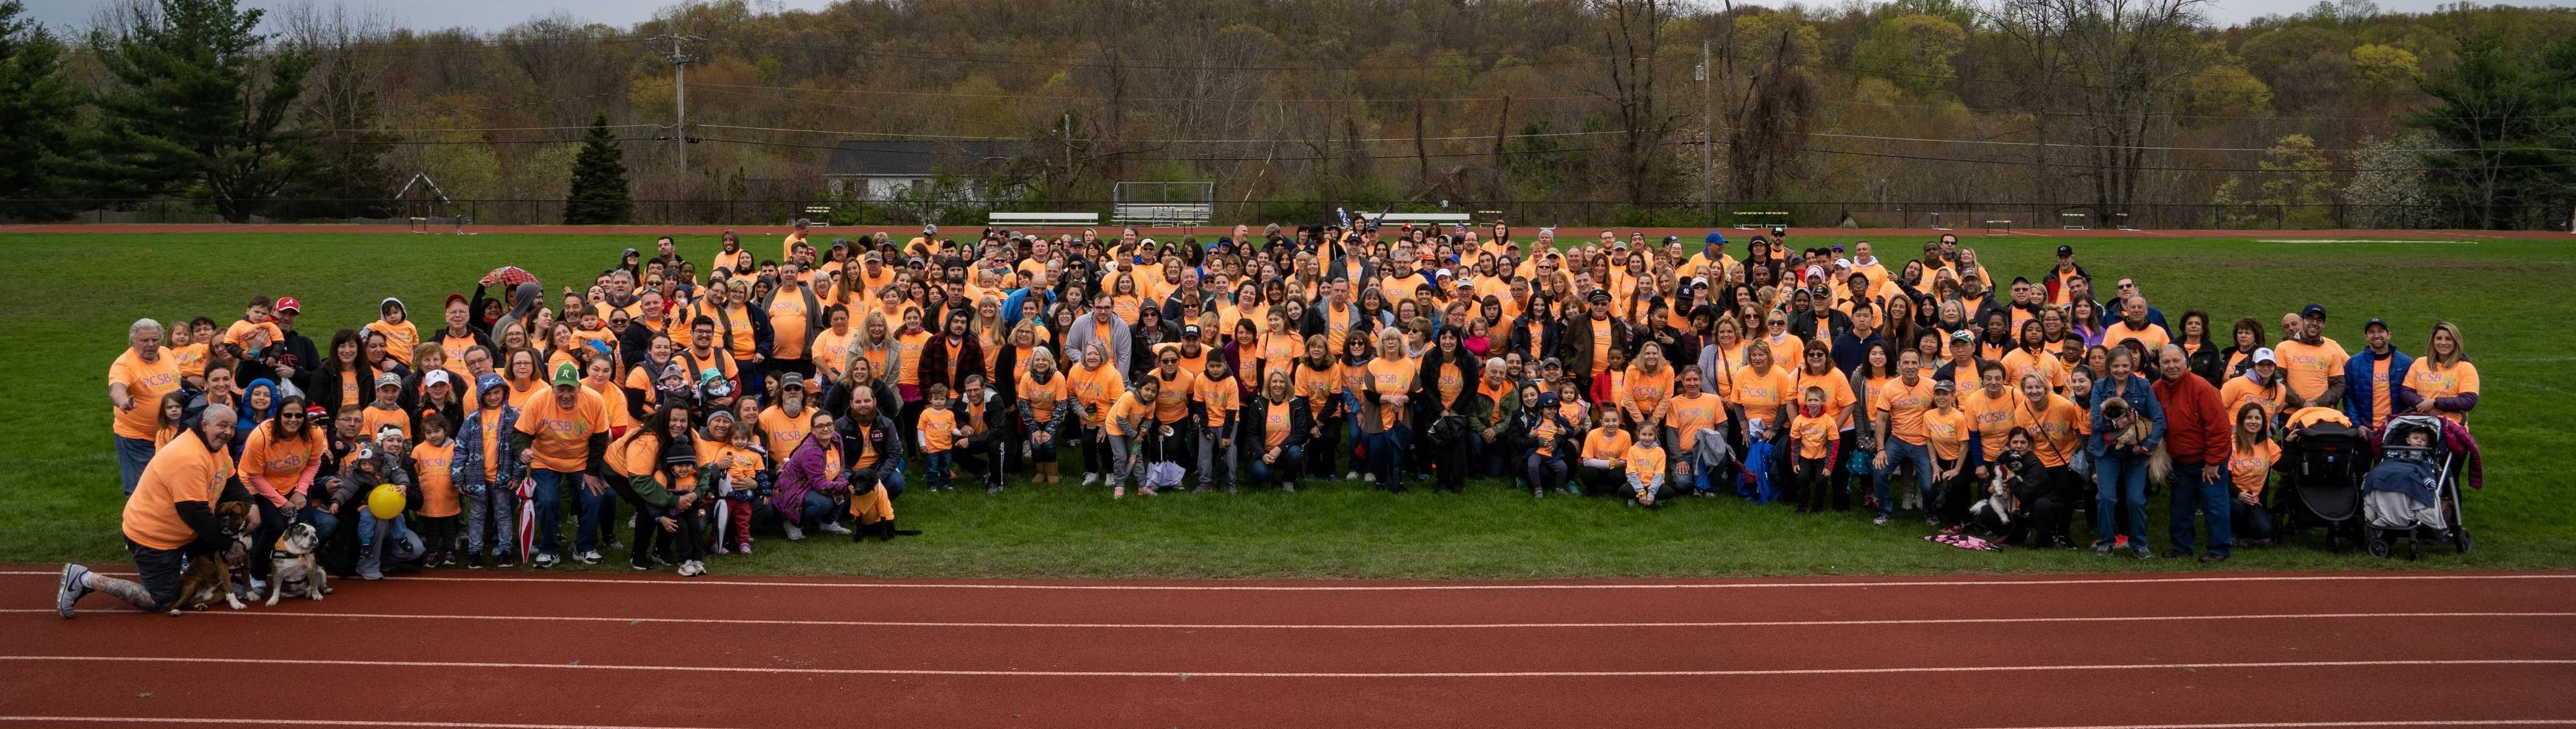 PCSB Heart Walk.2019.WEB.jpg